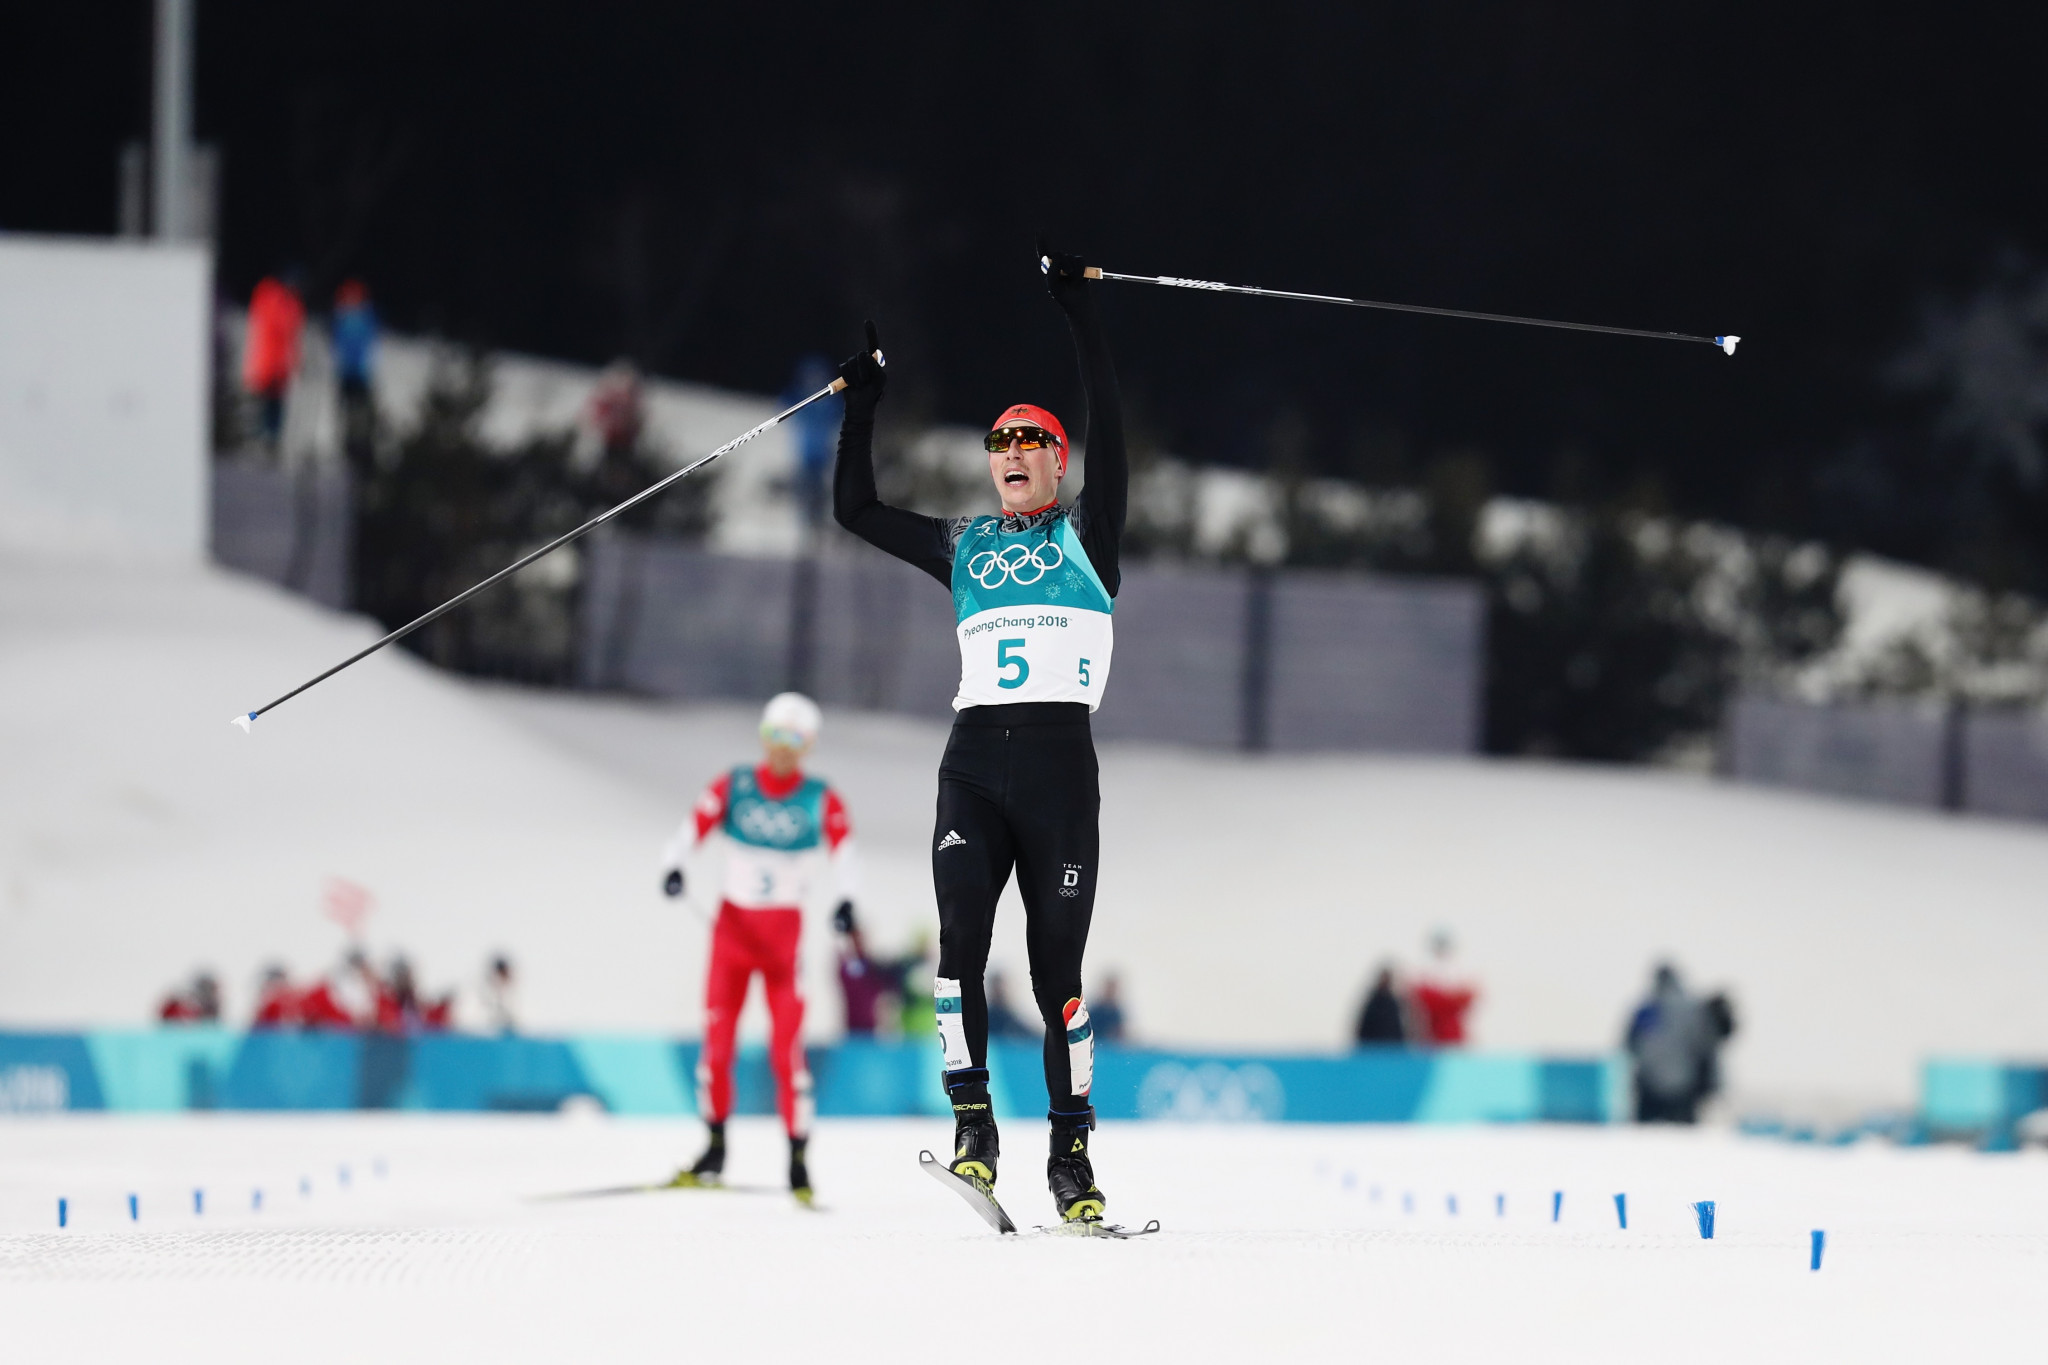 Frenzel becomes first skier to retain Olympic Nordic combined title for 38 years at Pyeongchang 2018